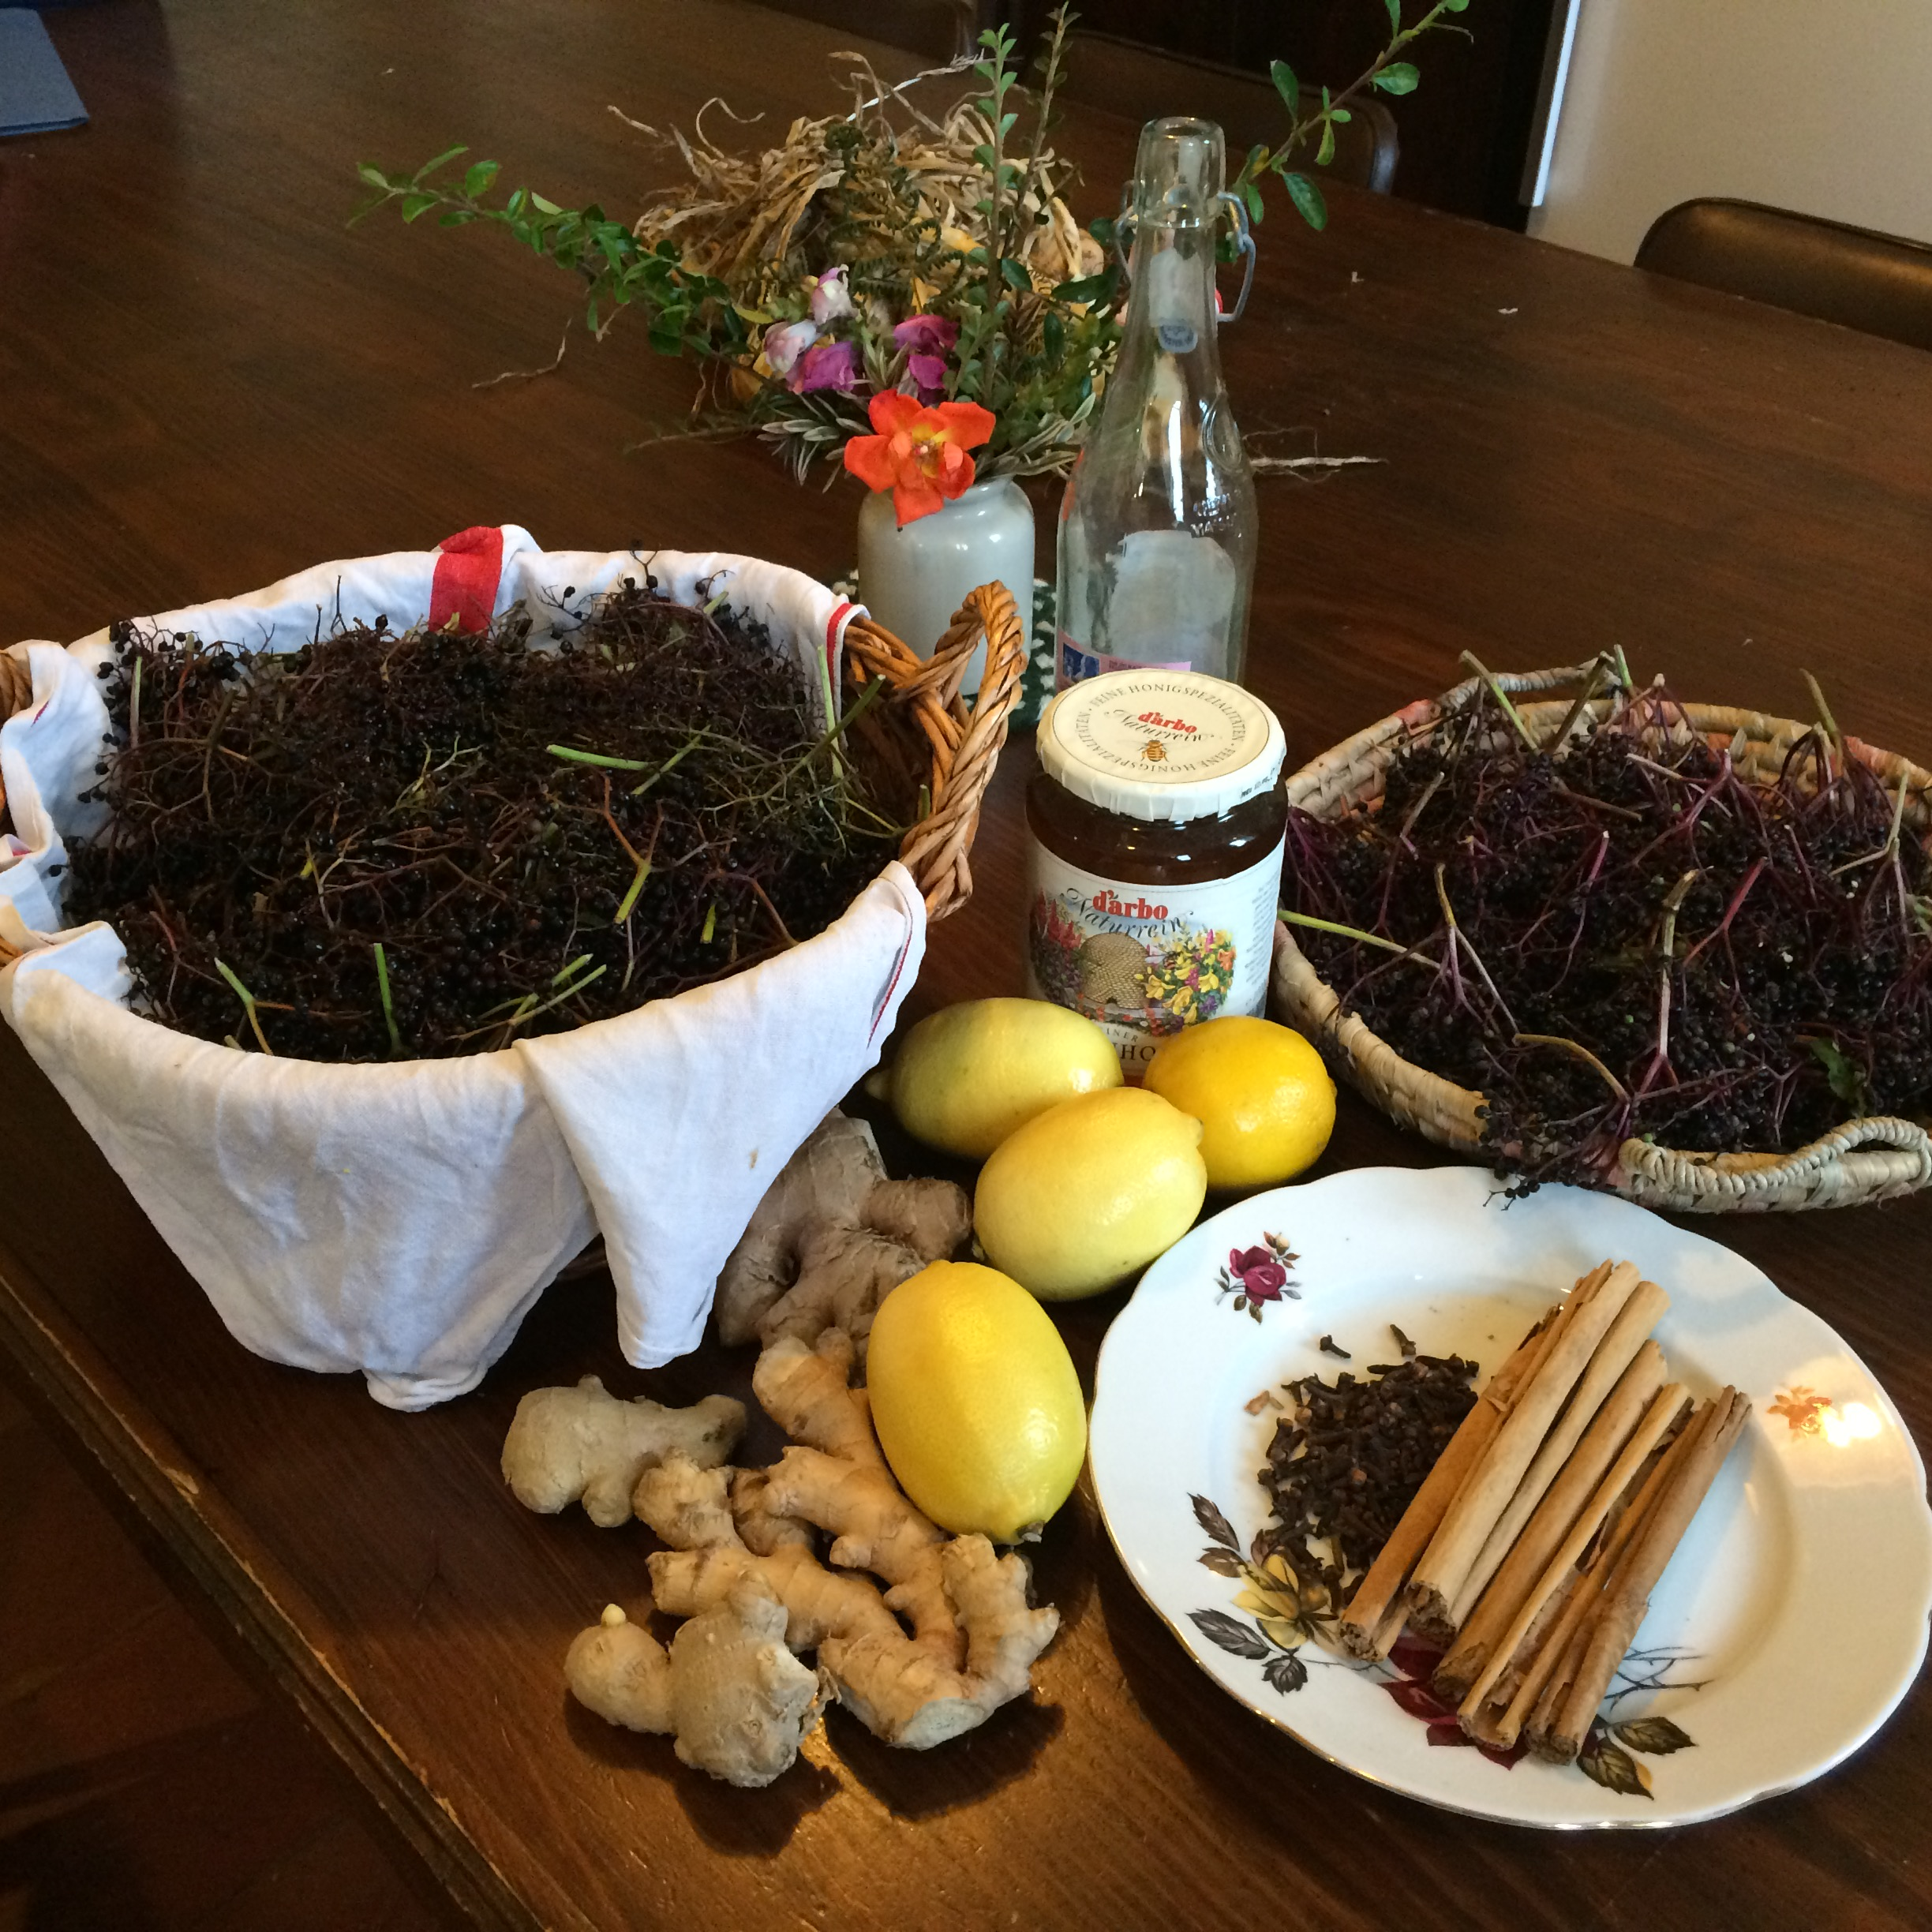 Ingredients for Elderberry Syrup Making